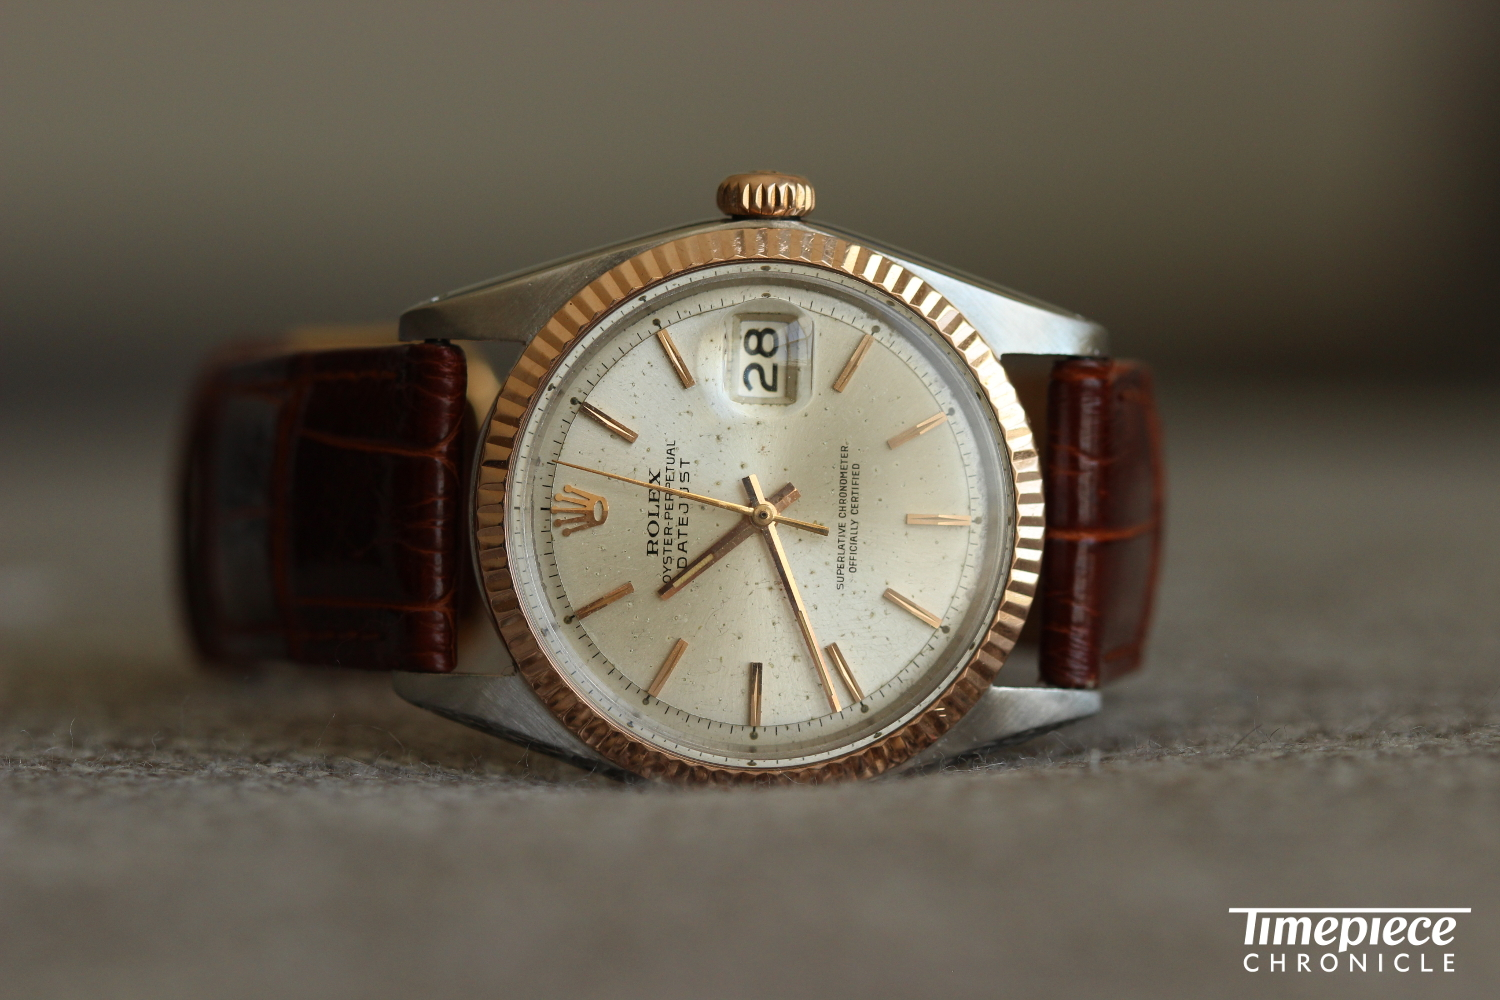 My review of this Rolex Ref. 1601 with pink gold bezel, soon to be available at Theoandharris.com, will be going live this Friday. Be sure to check back in!